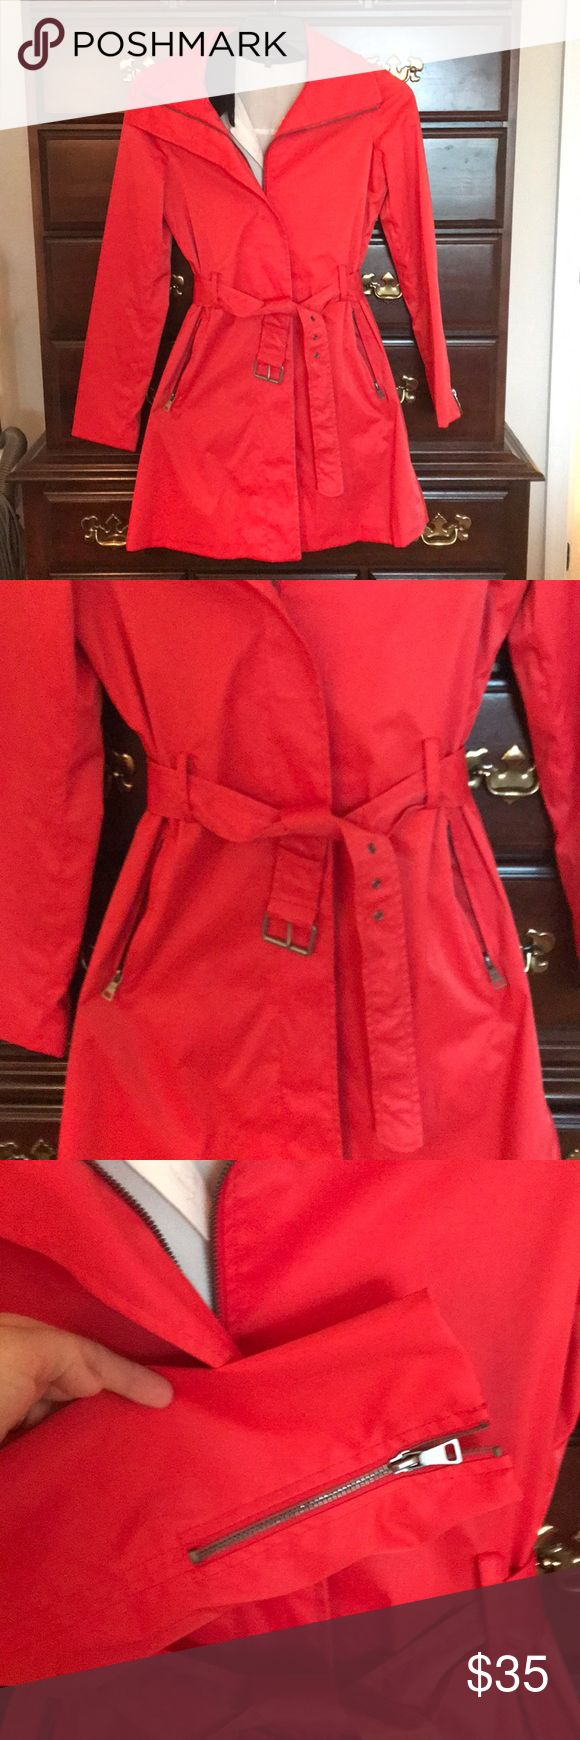 Mossimo rain resistant coat Red Mossimo water resistant coat. Both sleeves have a zipper at the wrist. There is a slit in tail of the coat. Zips up the front and has a belt. Excellent condition.   Shell- 52% cotton 45% nylon & 3% spandex Lining- 100% polyester  Machine washable Mossimo Supply Co Jackets & Coats